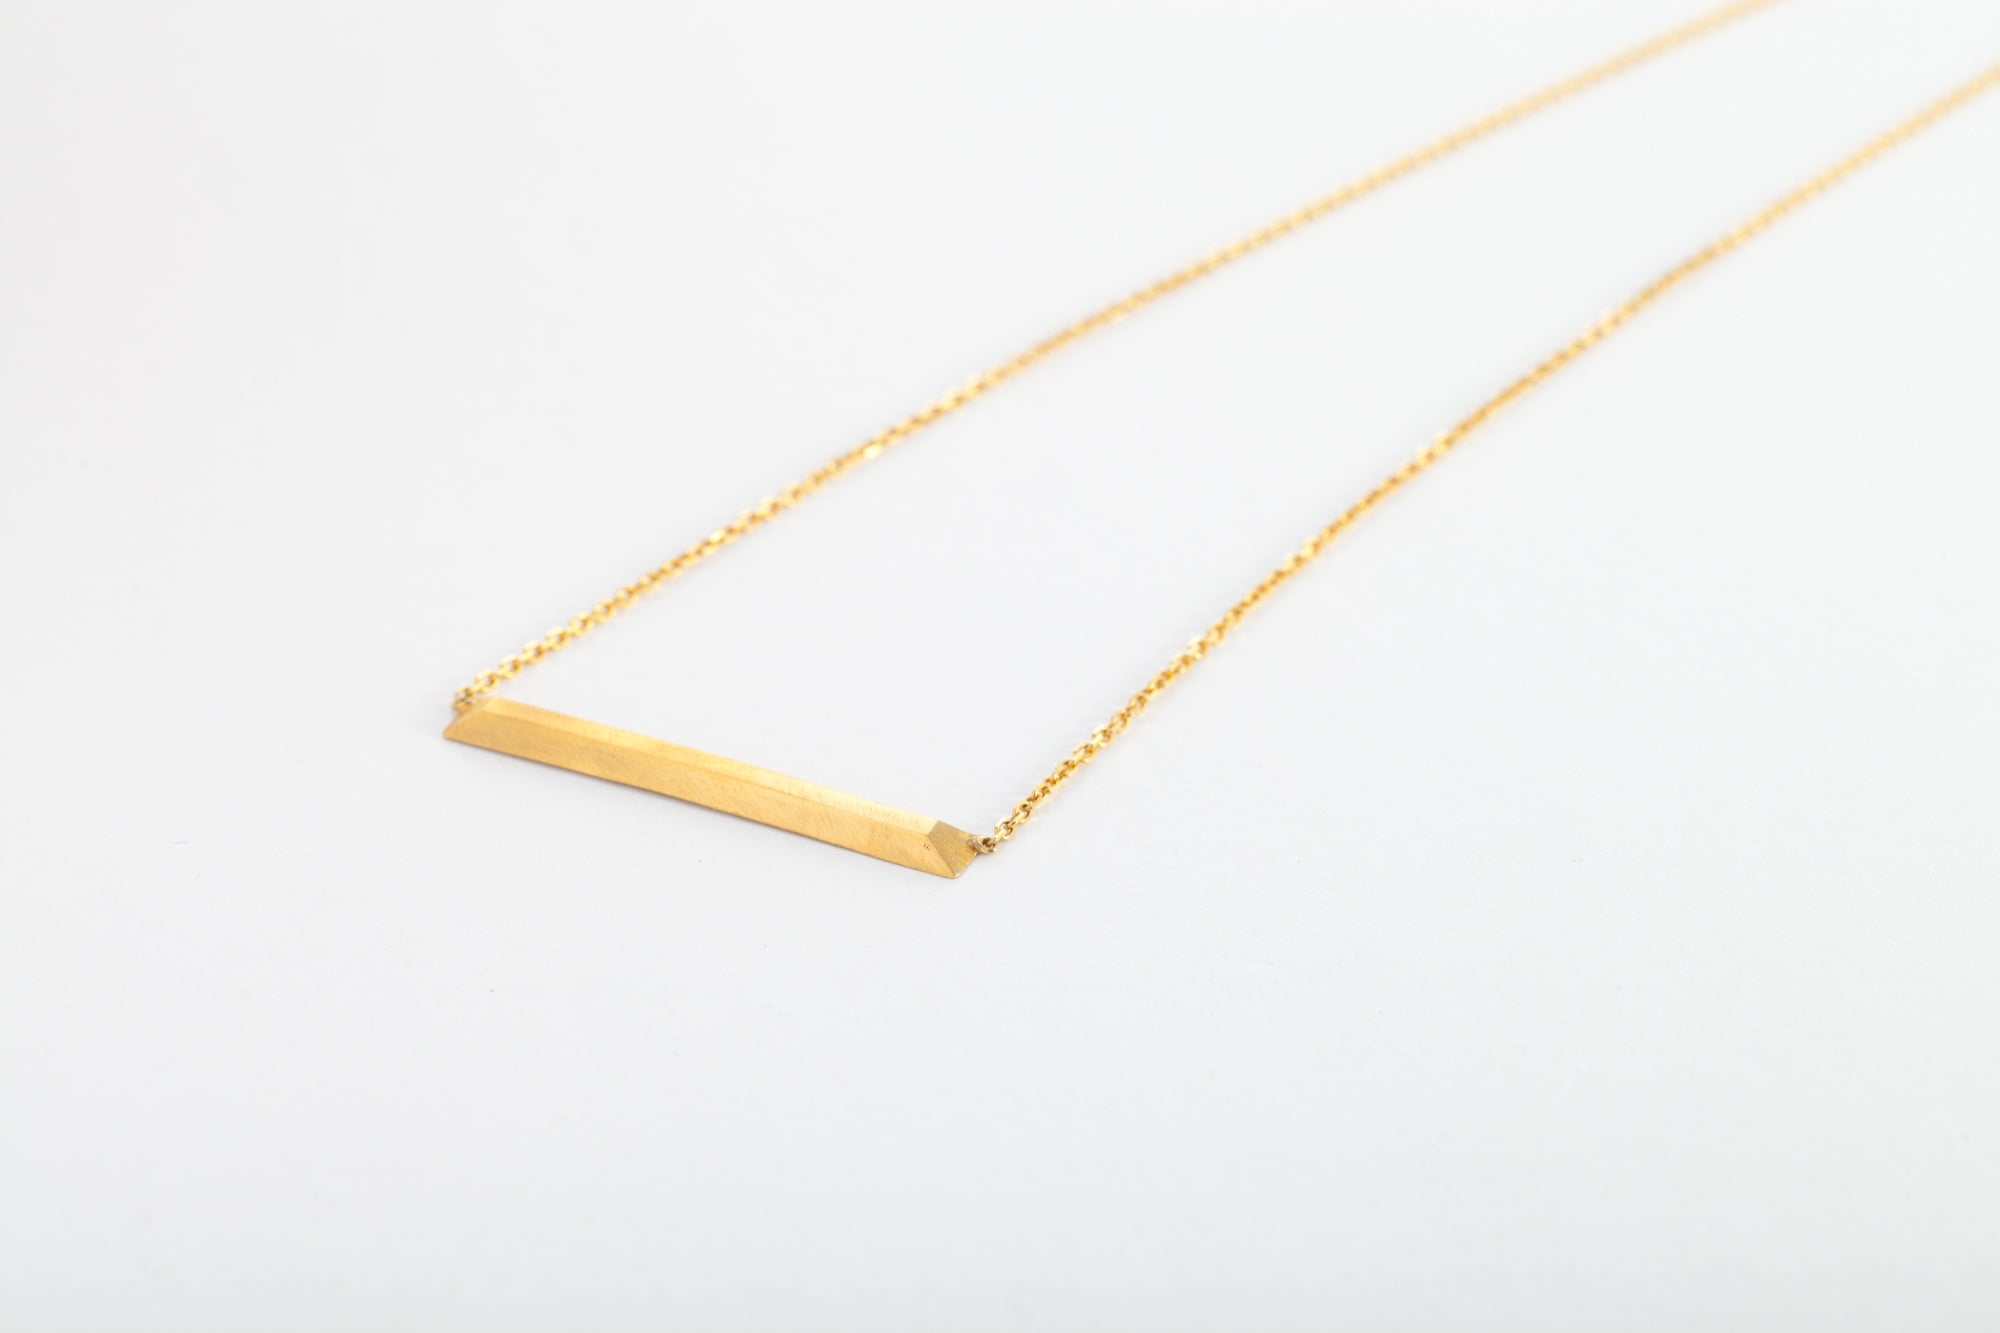 24k Gold Cross Bar Necklace